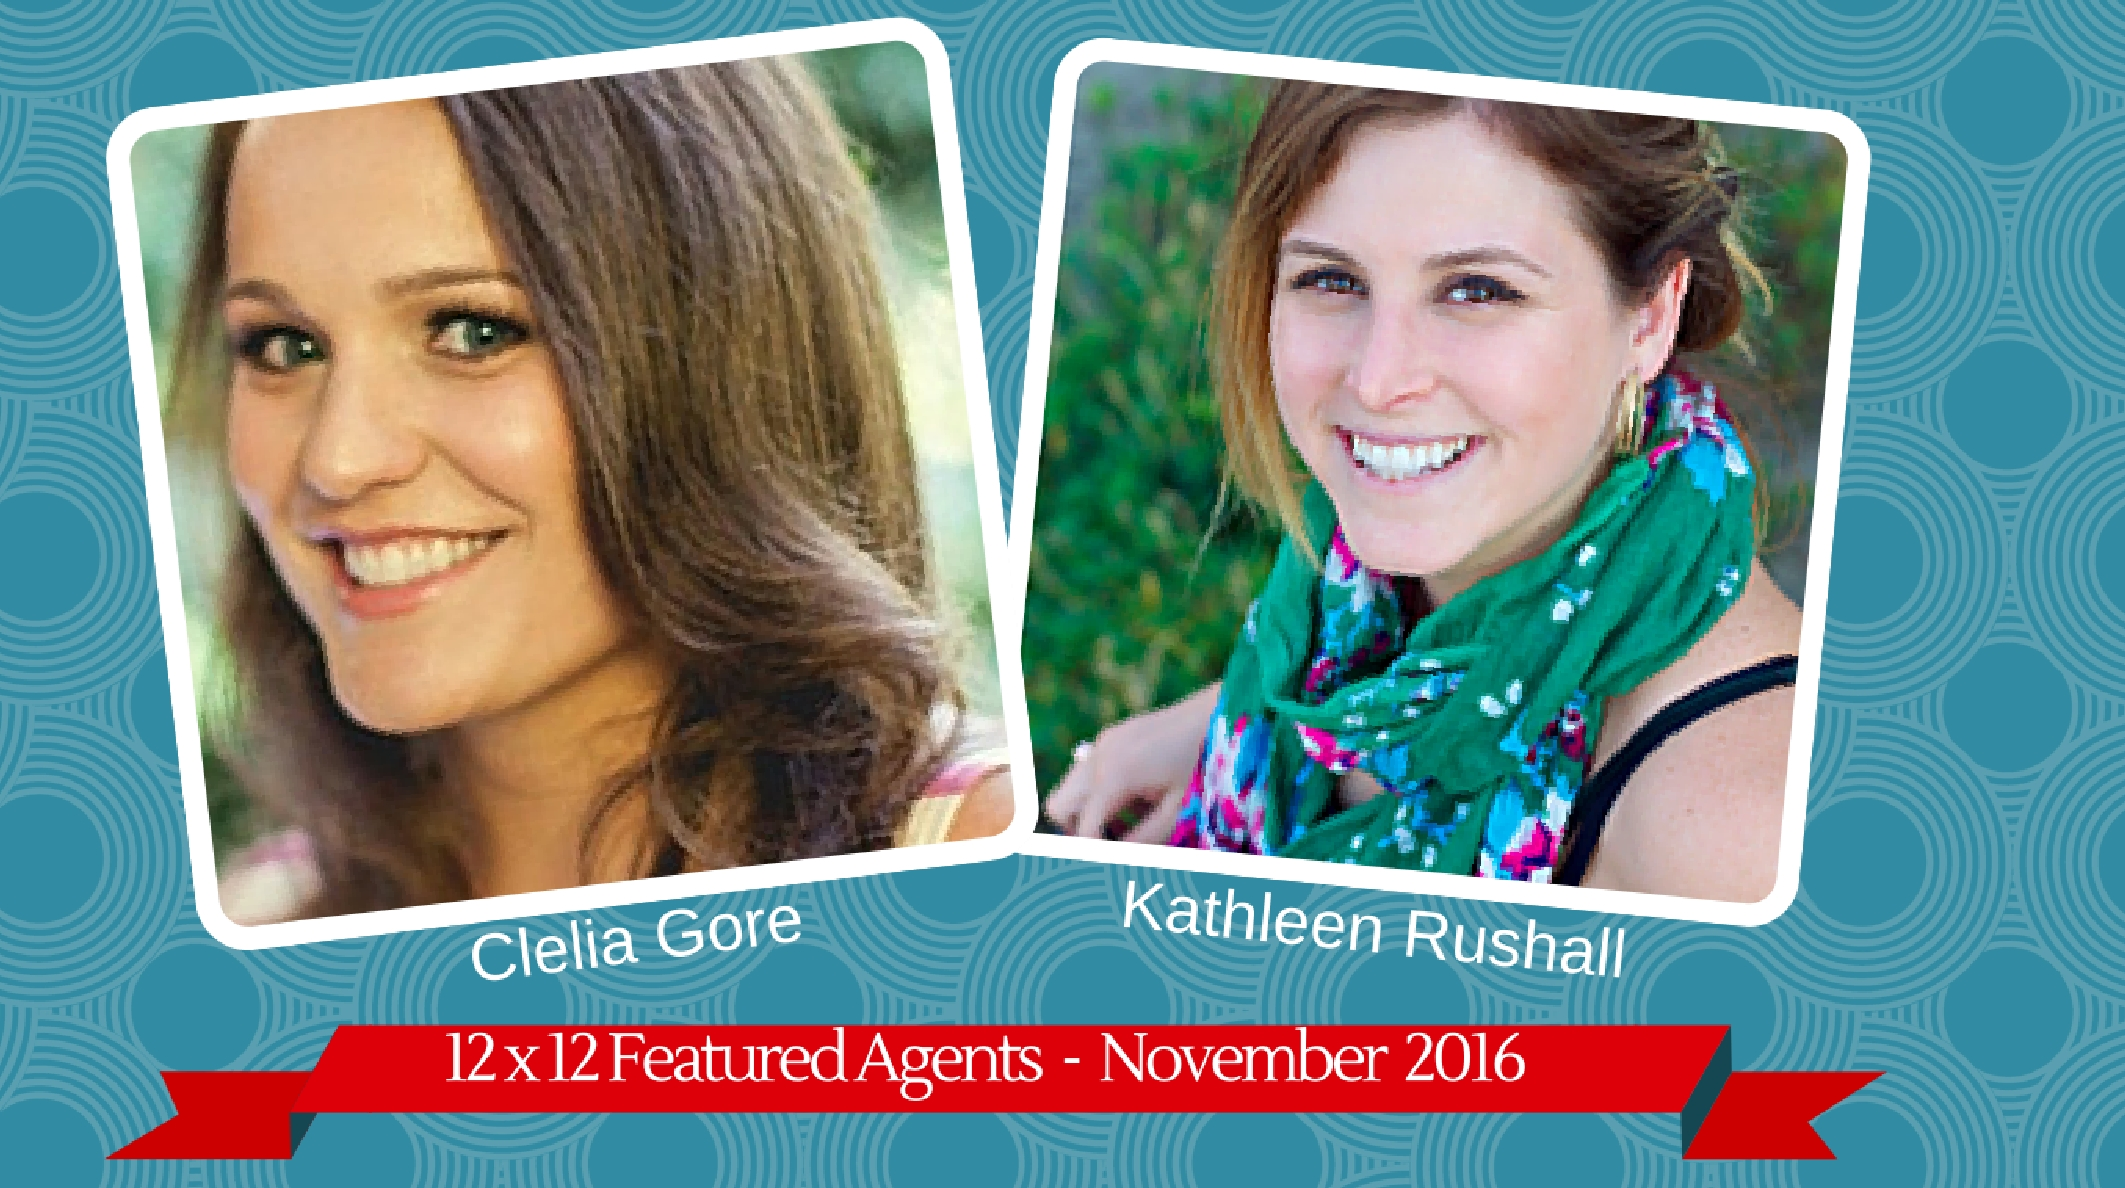 Clelia Gore & Kathleen Rushall – 12 X 12 Featured Agents November 2016